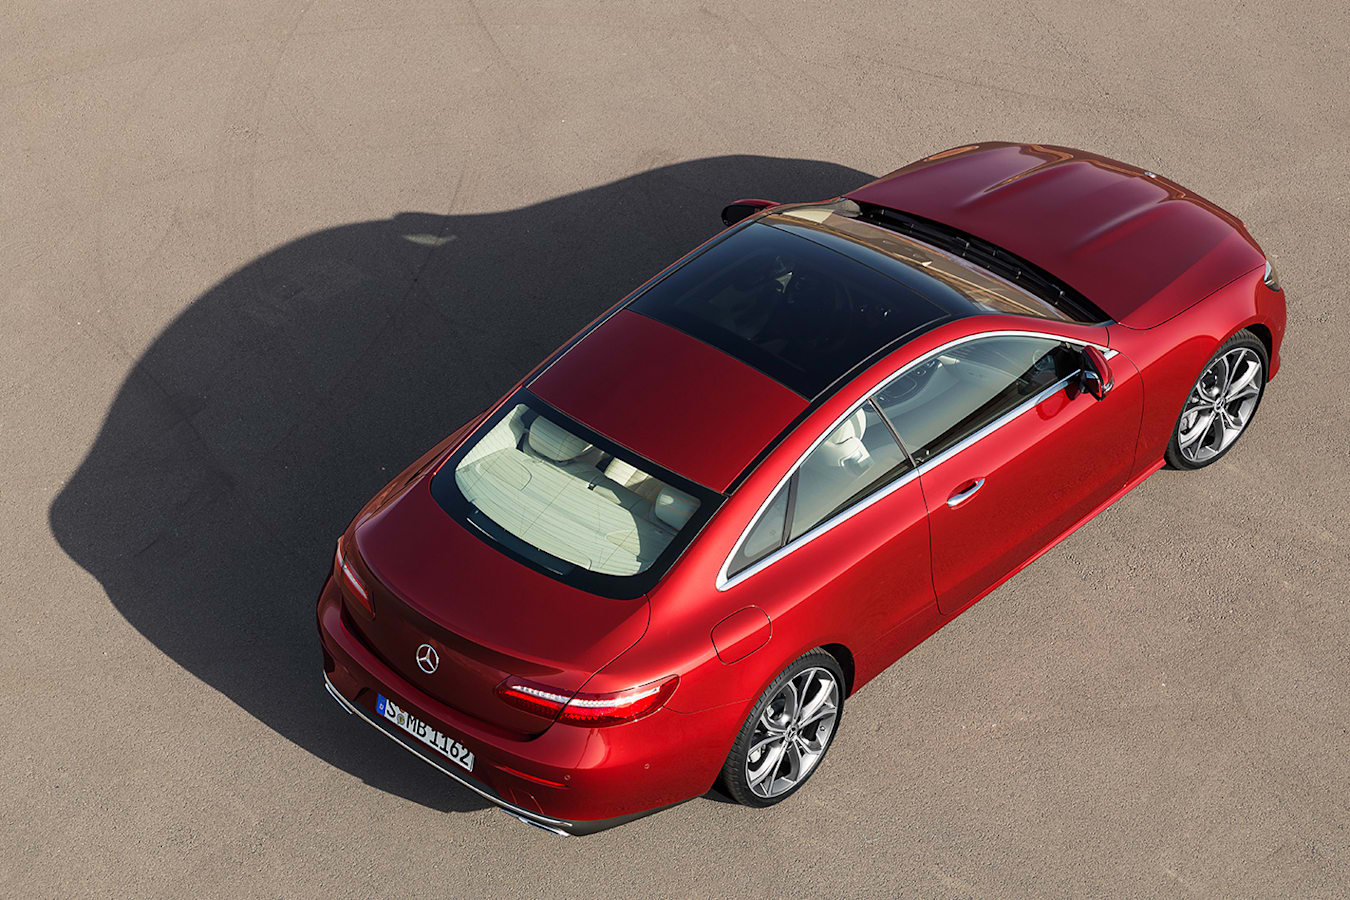 Gallery Mercedes Benz E Class Coupe Static Top 24 Jpg